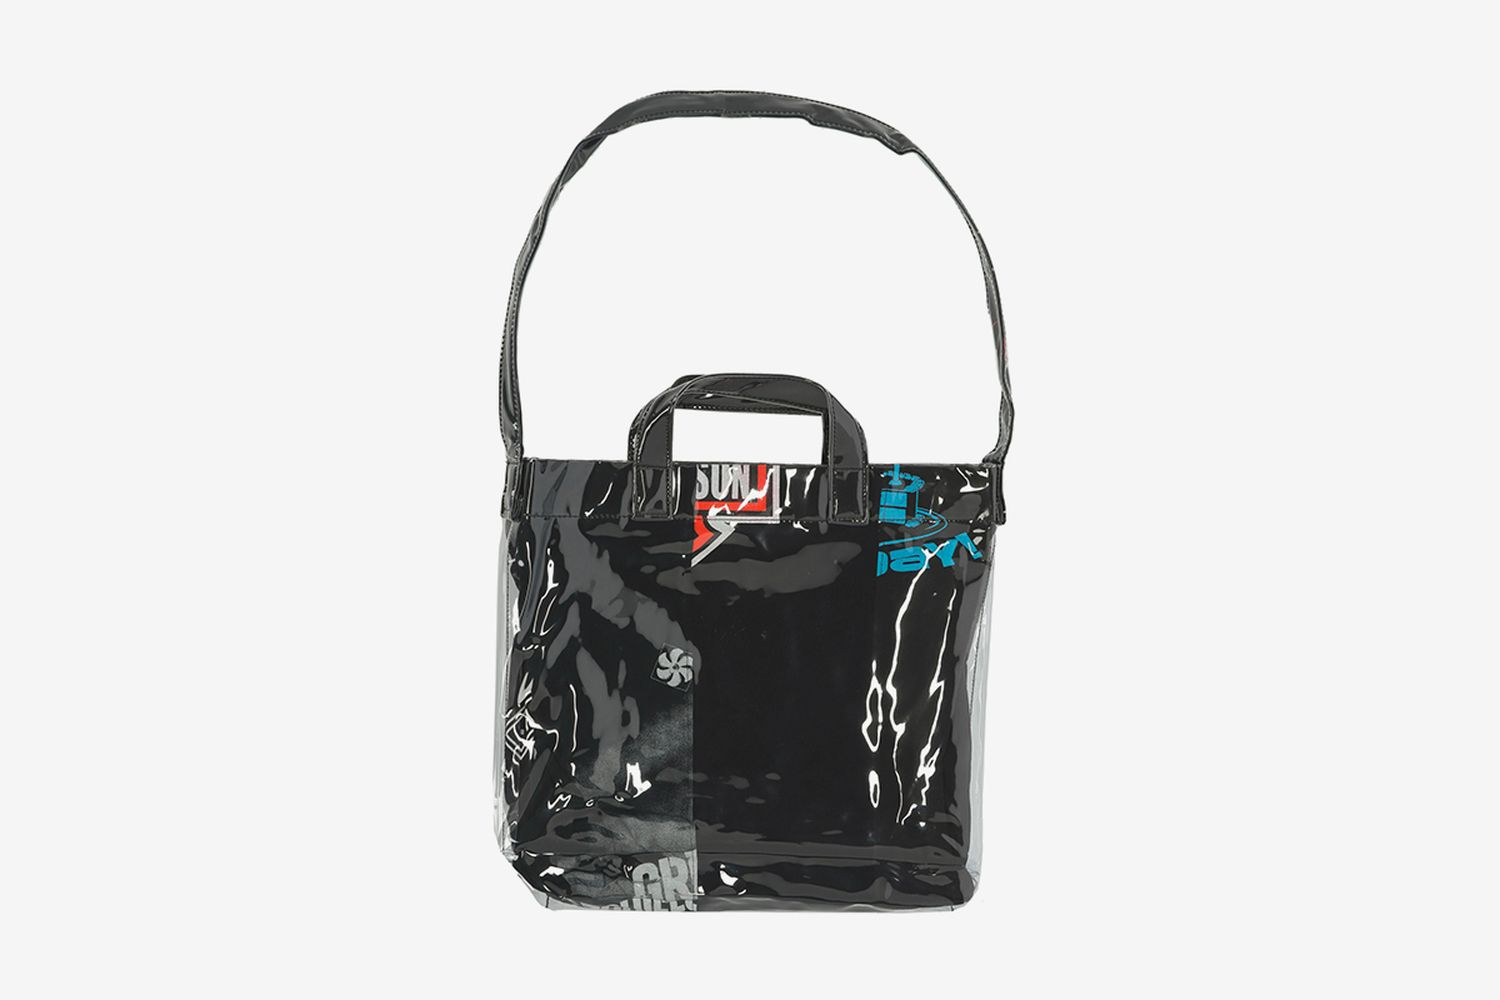 PVC Messenger Bag Multi 5